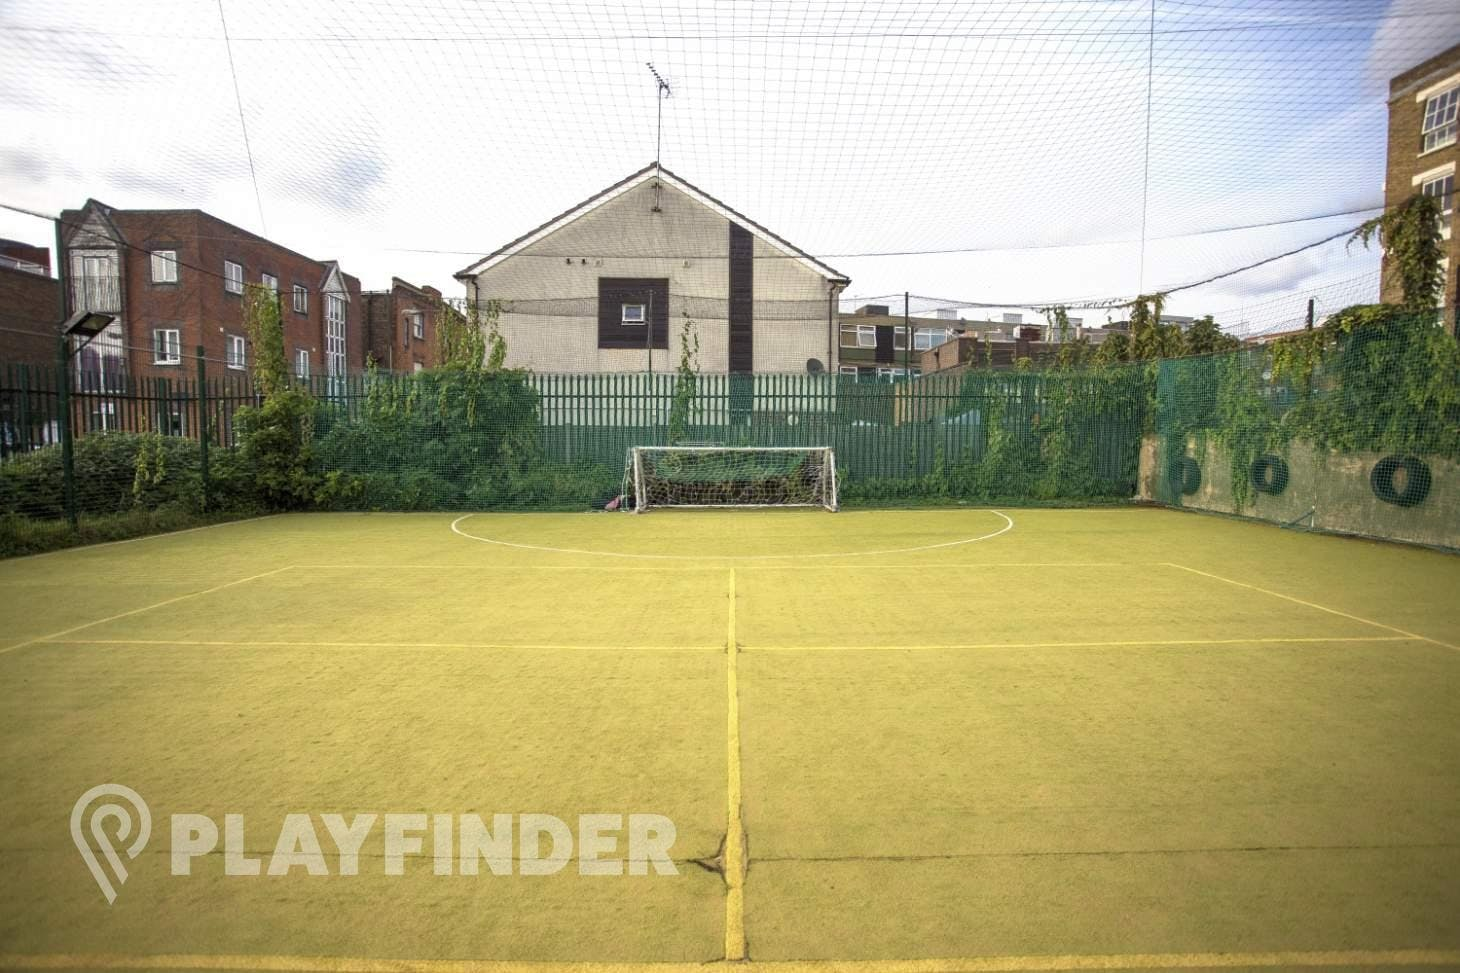 Weavers Adventure Playground Outdoor | Astroturf hockey pitch